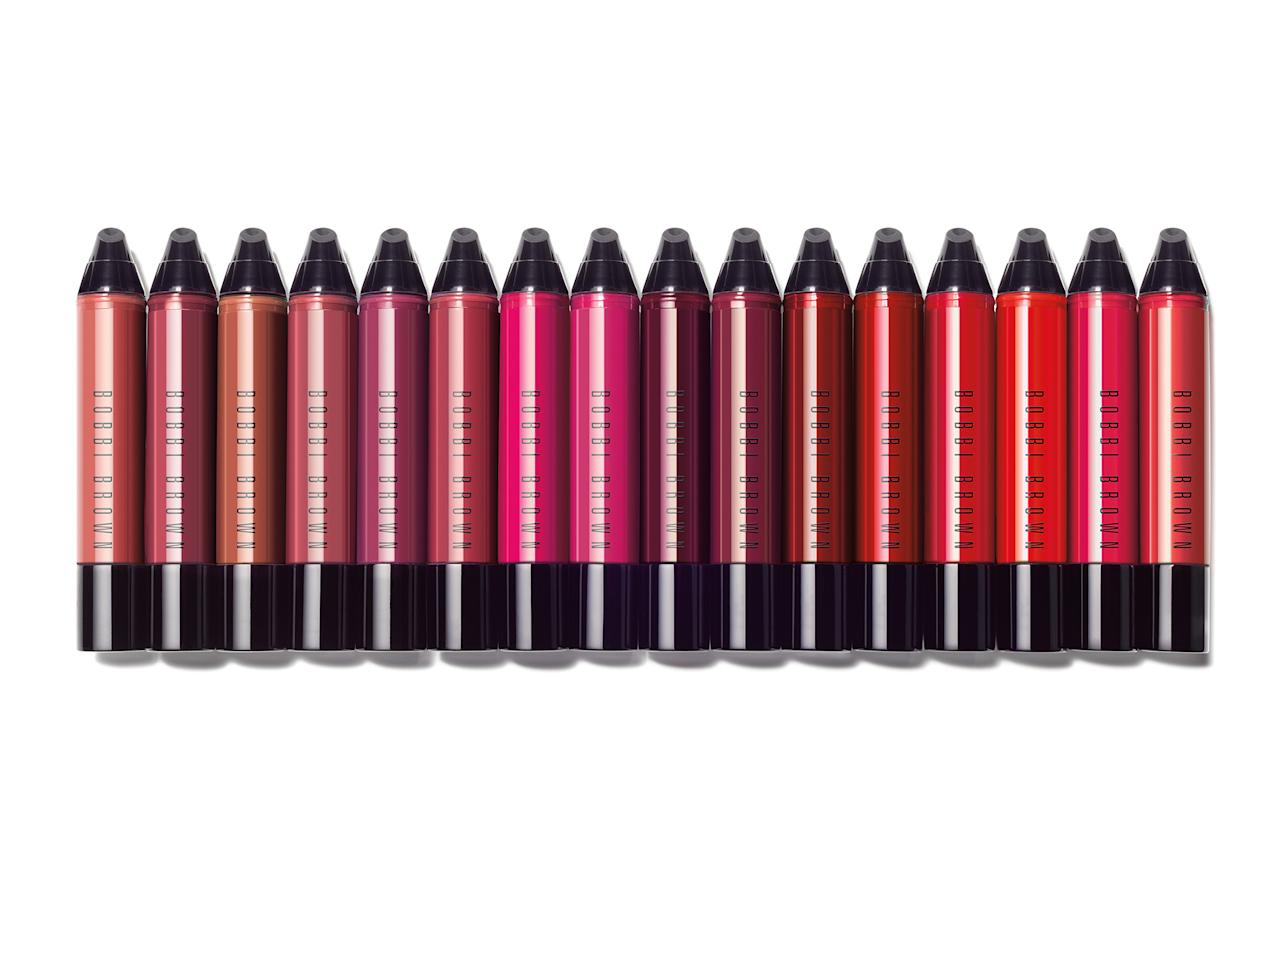 "<p>These cushiony art sticks pack a powerful punch of color that dry down to a nonsticky creamy finish that lasts for hours. They also add a swipe of moisture to your lips to keep them from getting chapped and rough. (<a rel=""nofollow"" href=""https://www.bobbibrowncosmetics.com/product/14460/47375/new/art-stick-liquid-lip/ss17"">$28</a>, bobbibrowncosmetics.com) (Photo: Bobbi Brown) </p>"